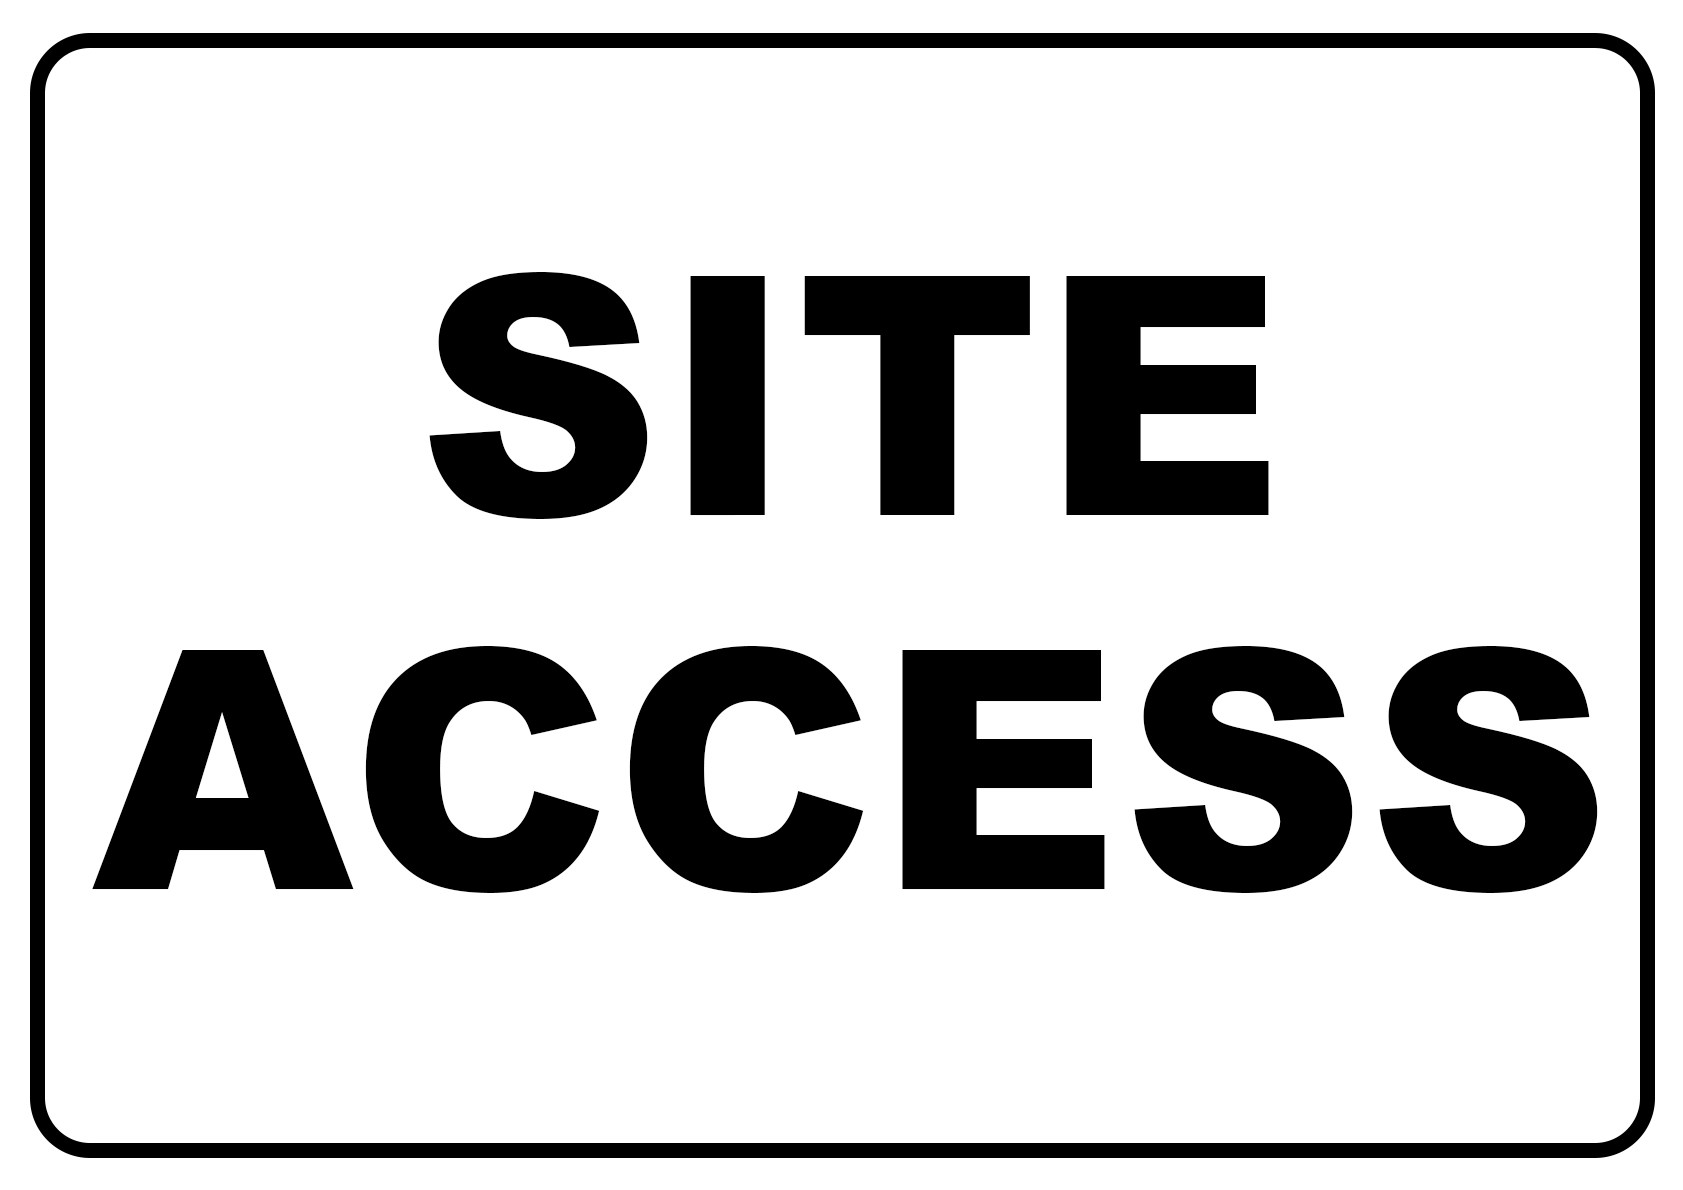 Entry Site Access